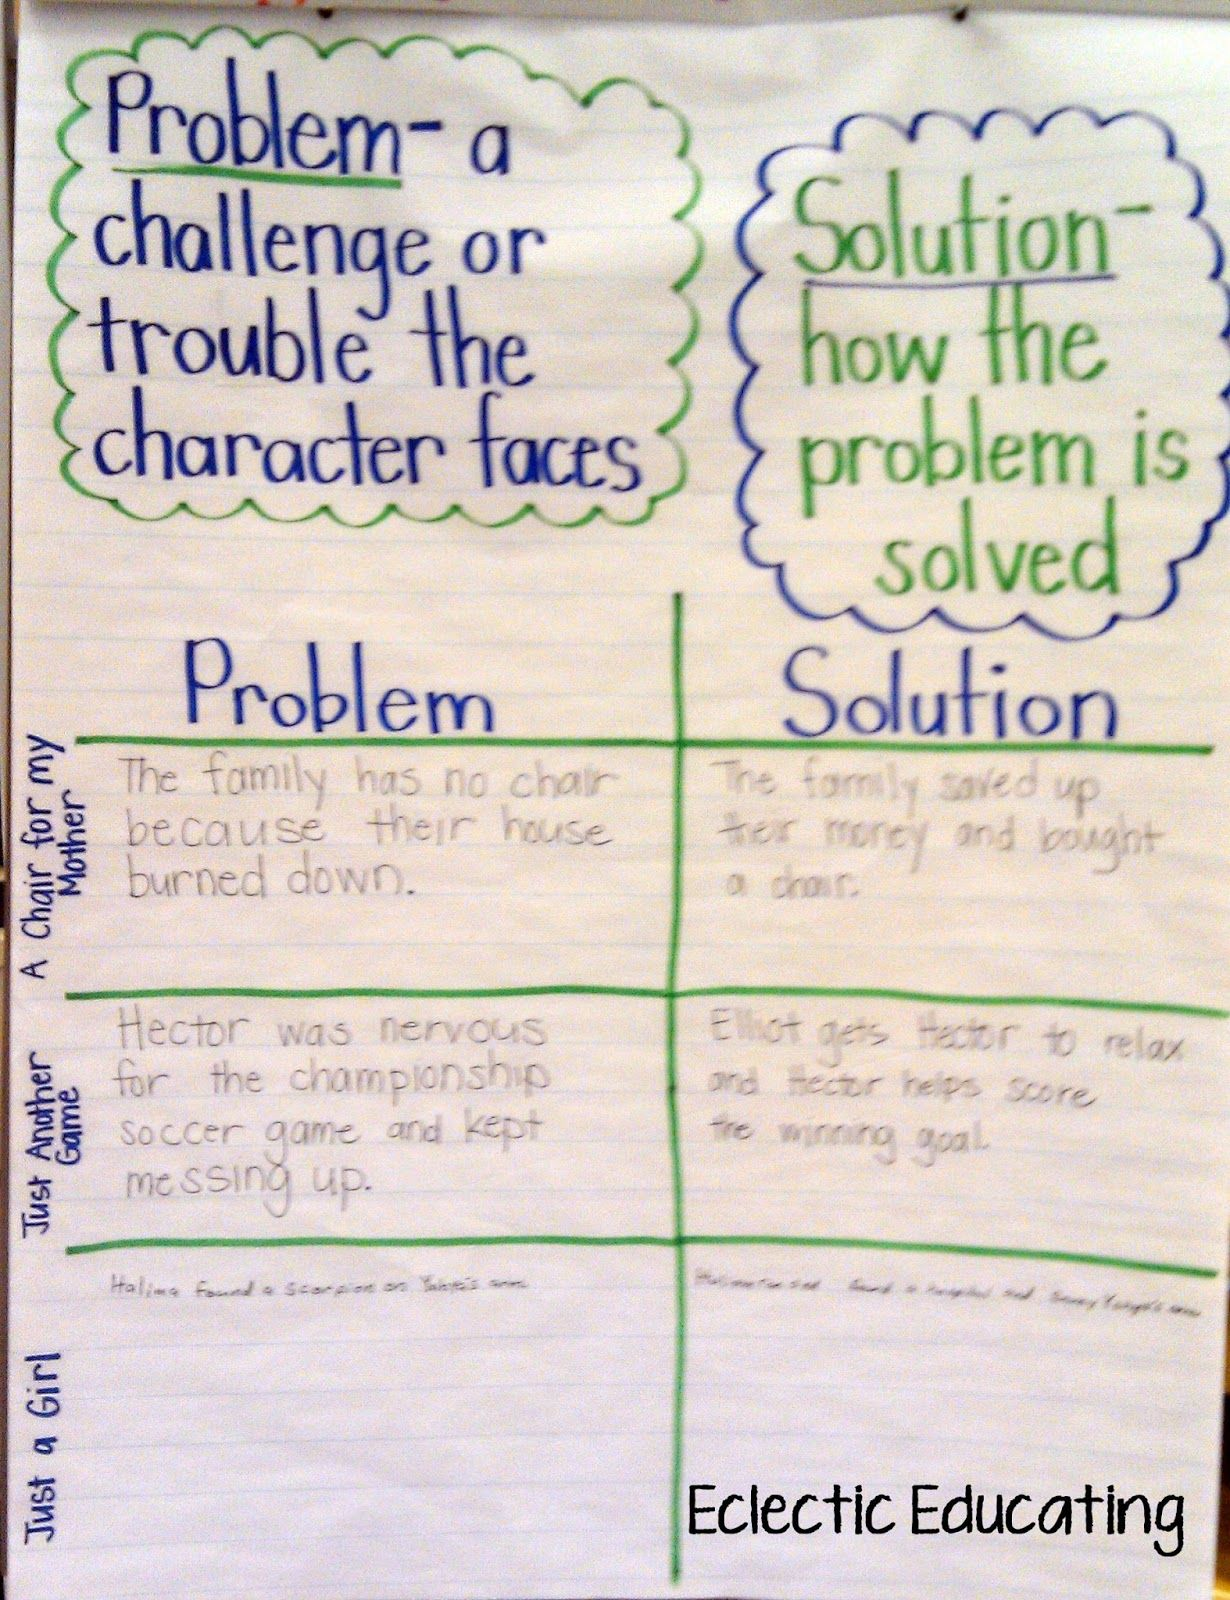 hight resolution of Eclectic Educating: Problem and Solution   Problem and solution